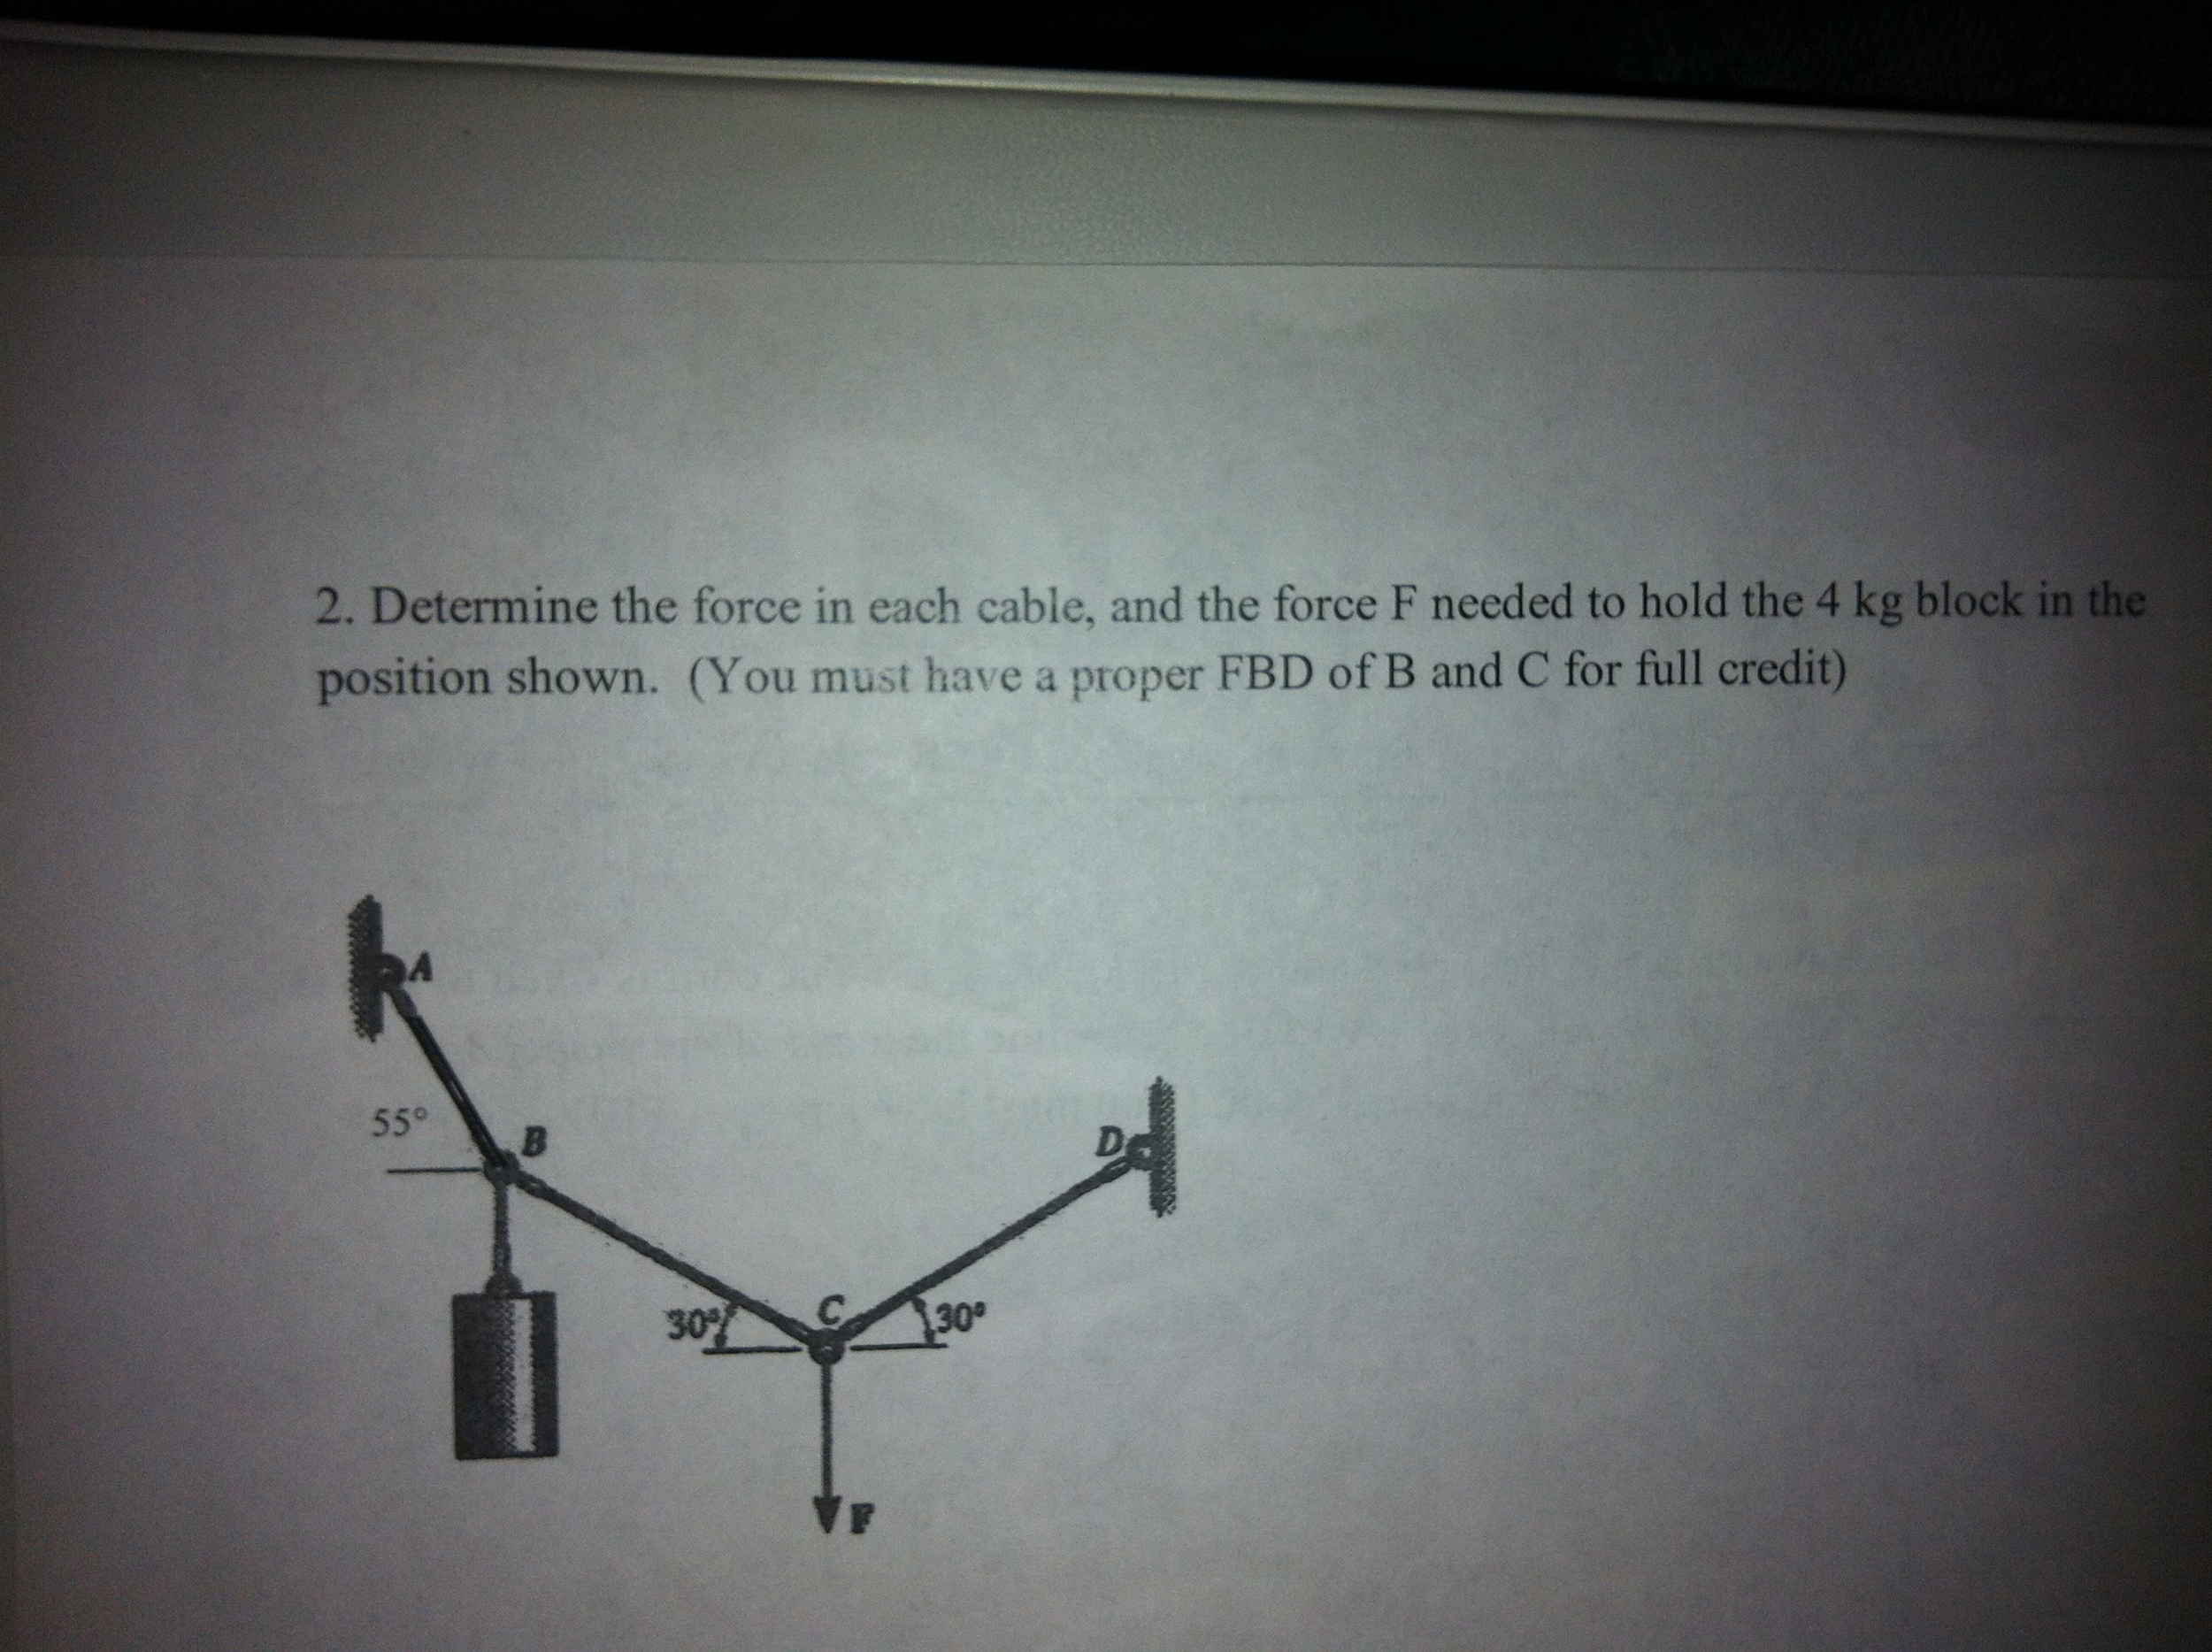 Determine the force in each cable, and the force F